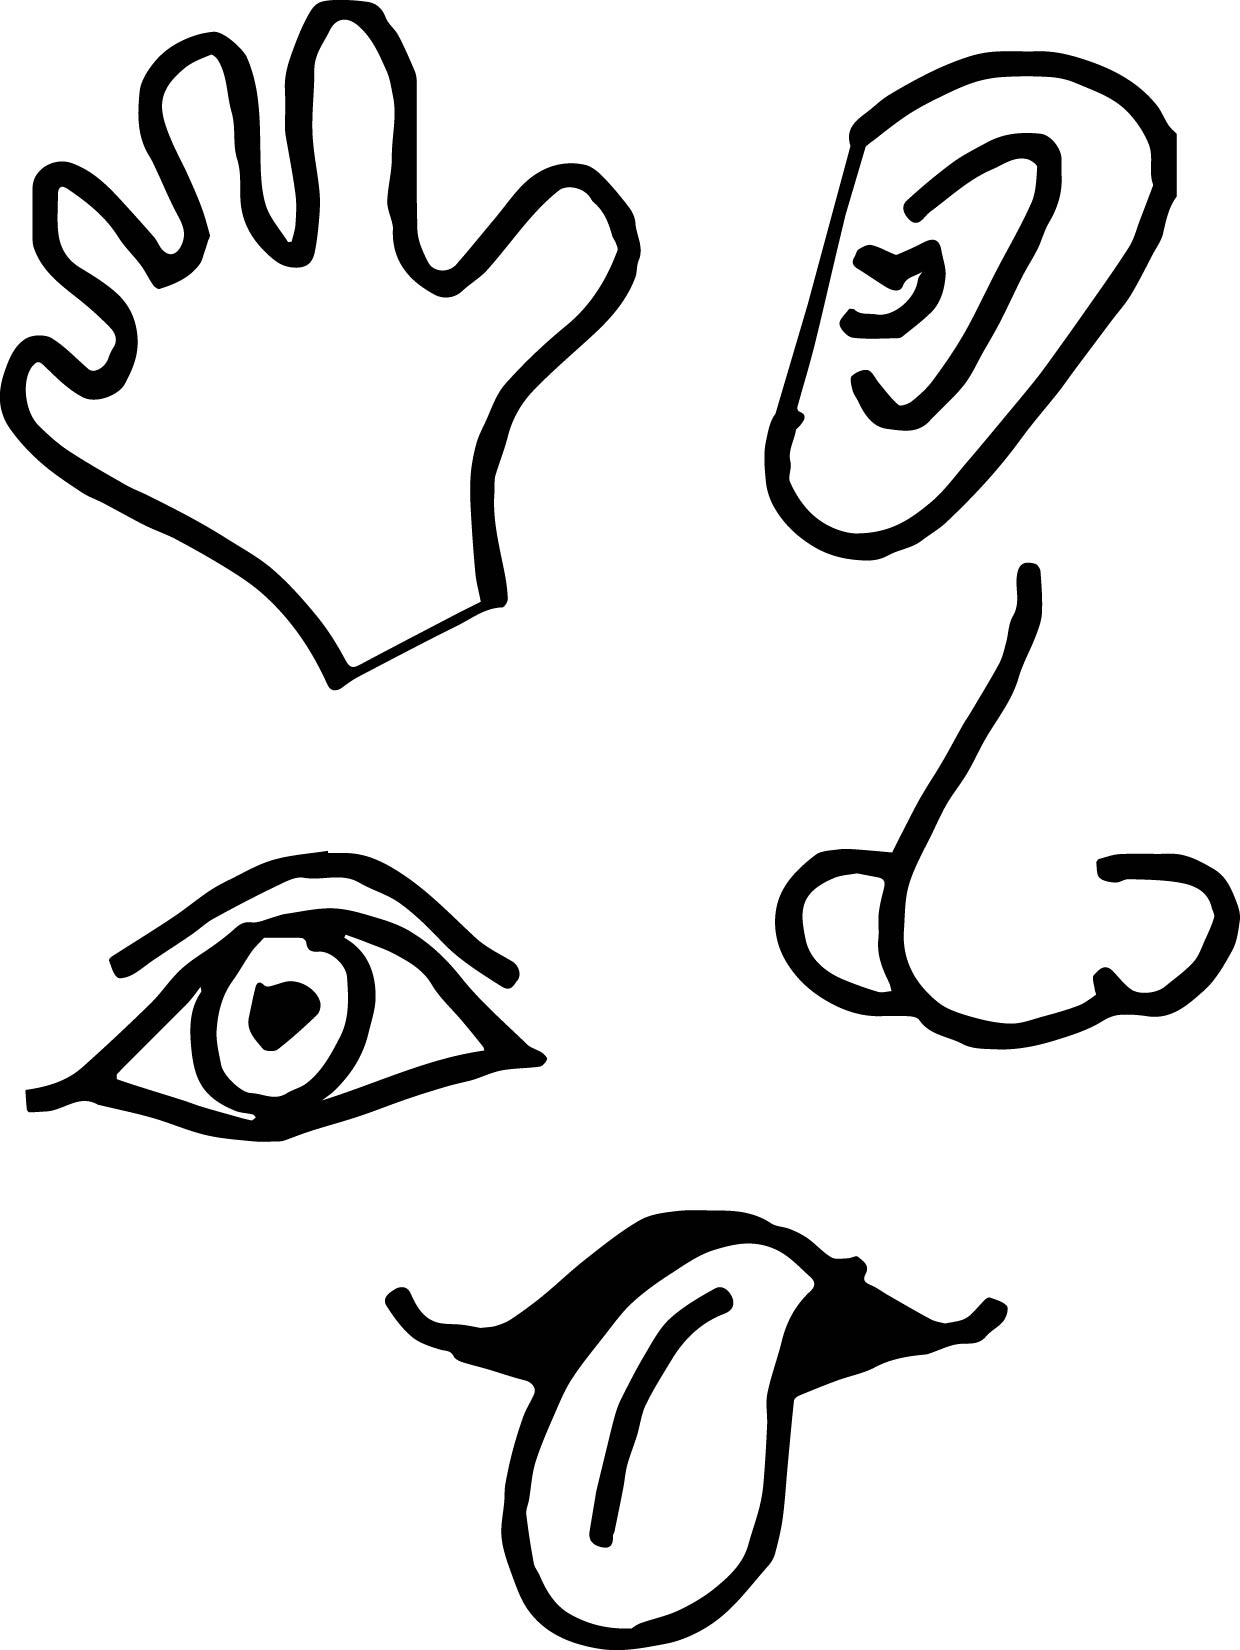 5 Senses Picture Coloring Page